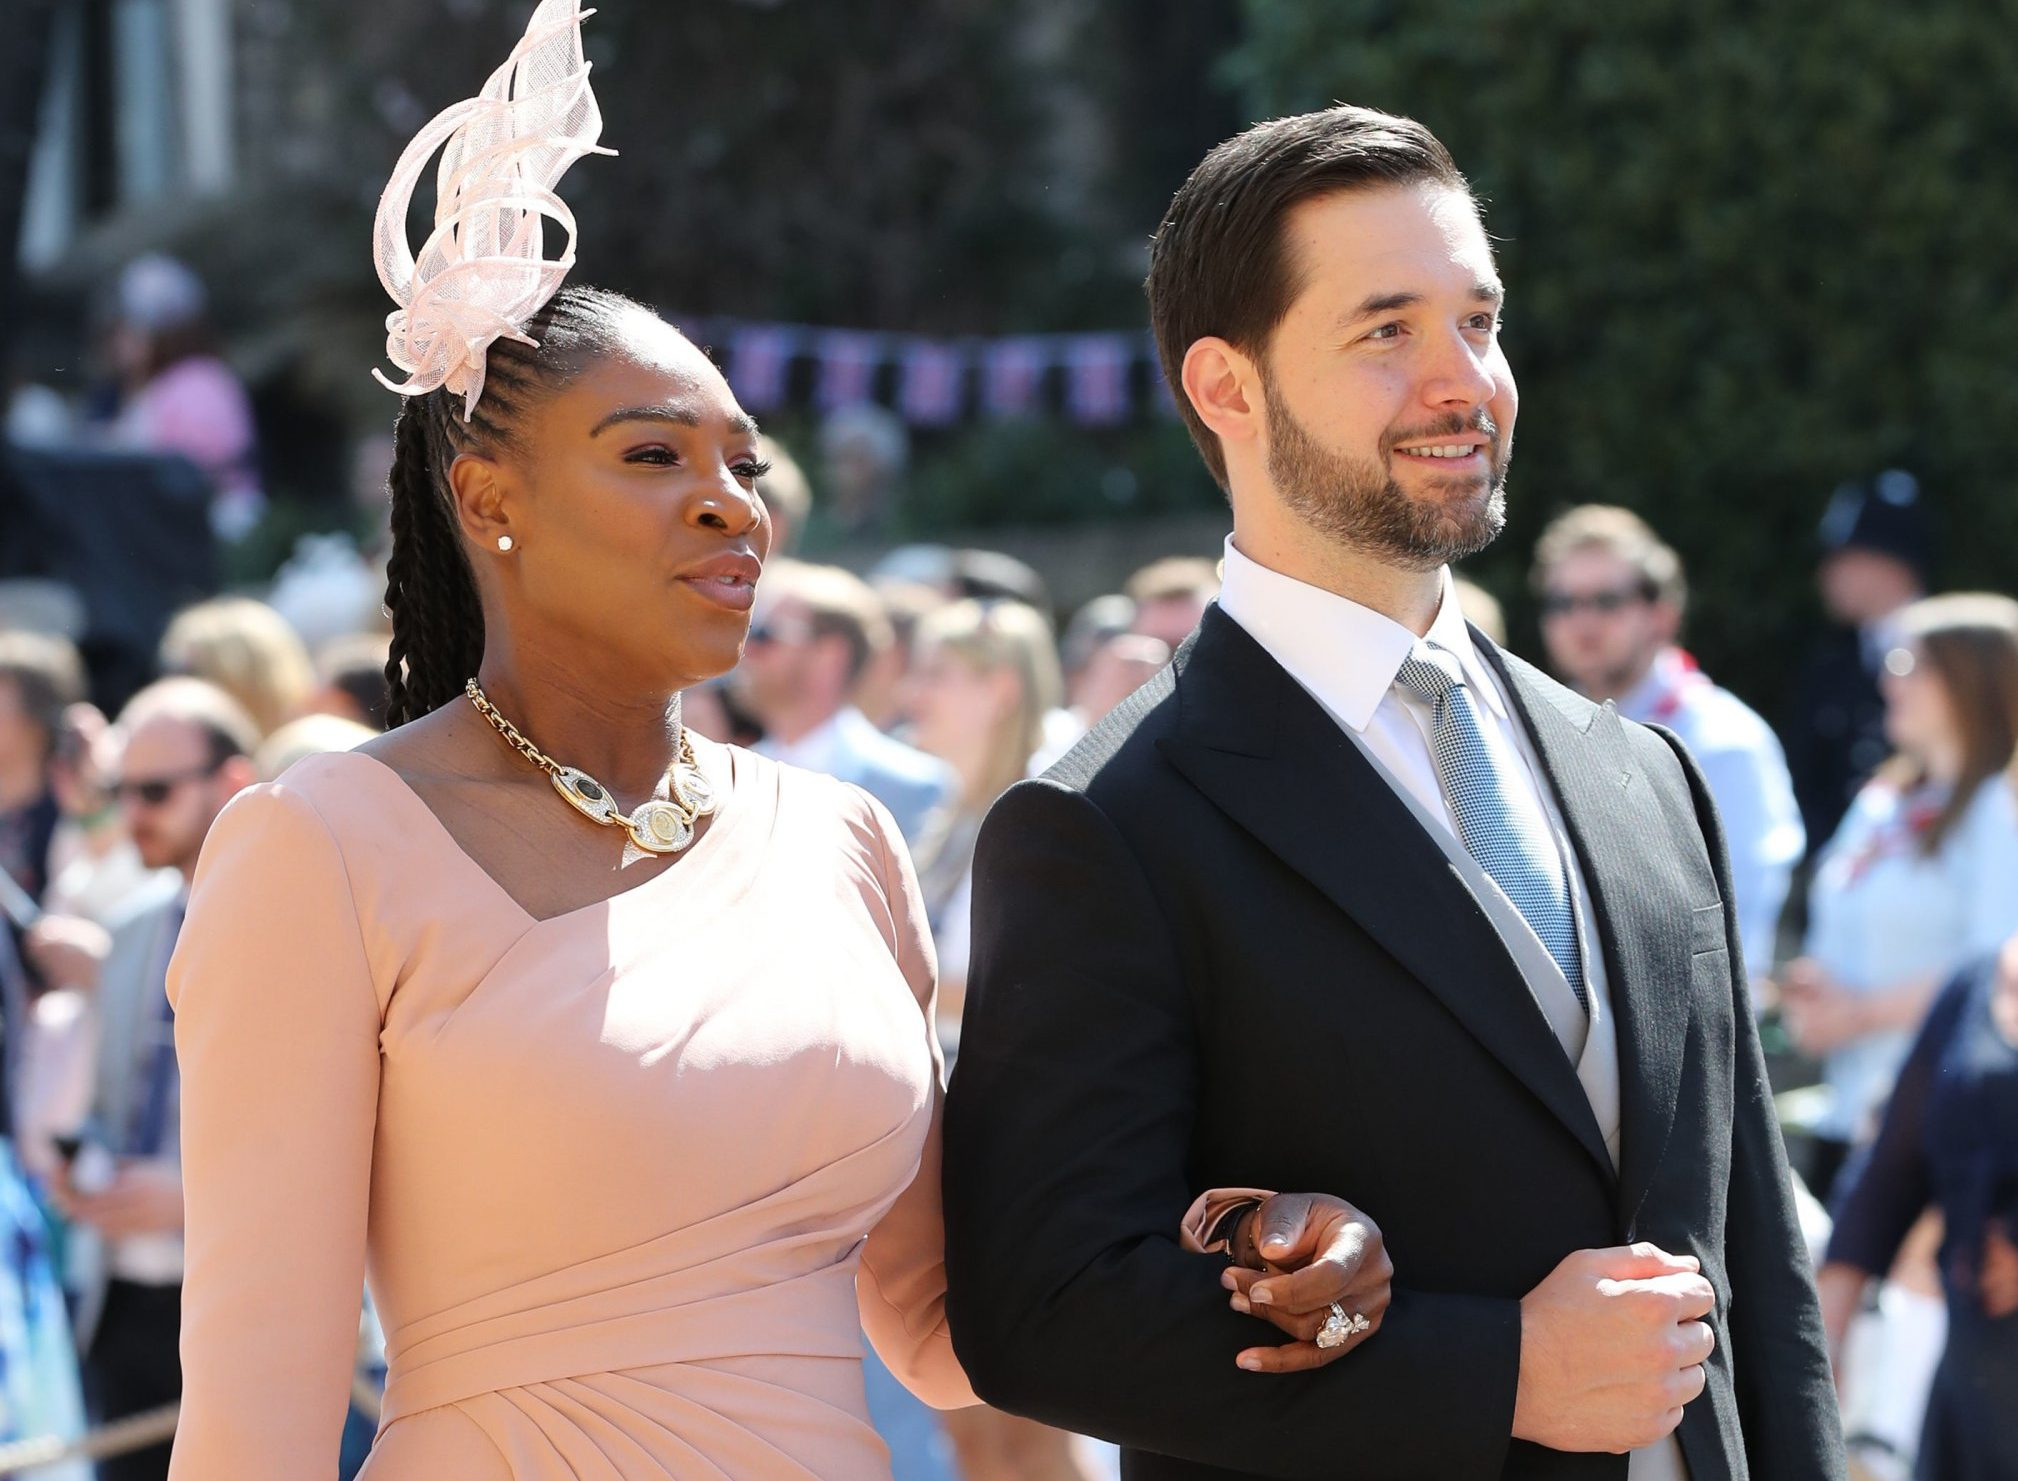 Serena Williams and Alexis Ohanian arrive at St George's Chapel at Windsor Castle for the wedding of Meghan Markle and Prince Harry. PRESS ASSOCIATION Photo. Picture date: Saturday May 19, 2018. See PA story ROYAL Wedding. Photo credit should read: Gareth Fuller/PA Wire